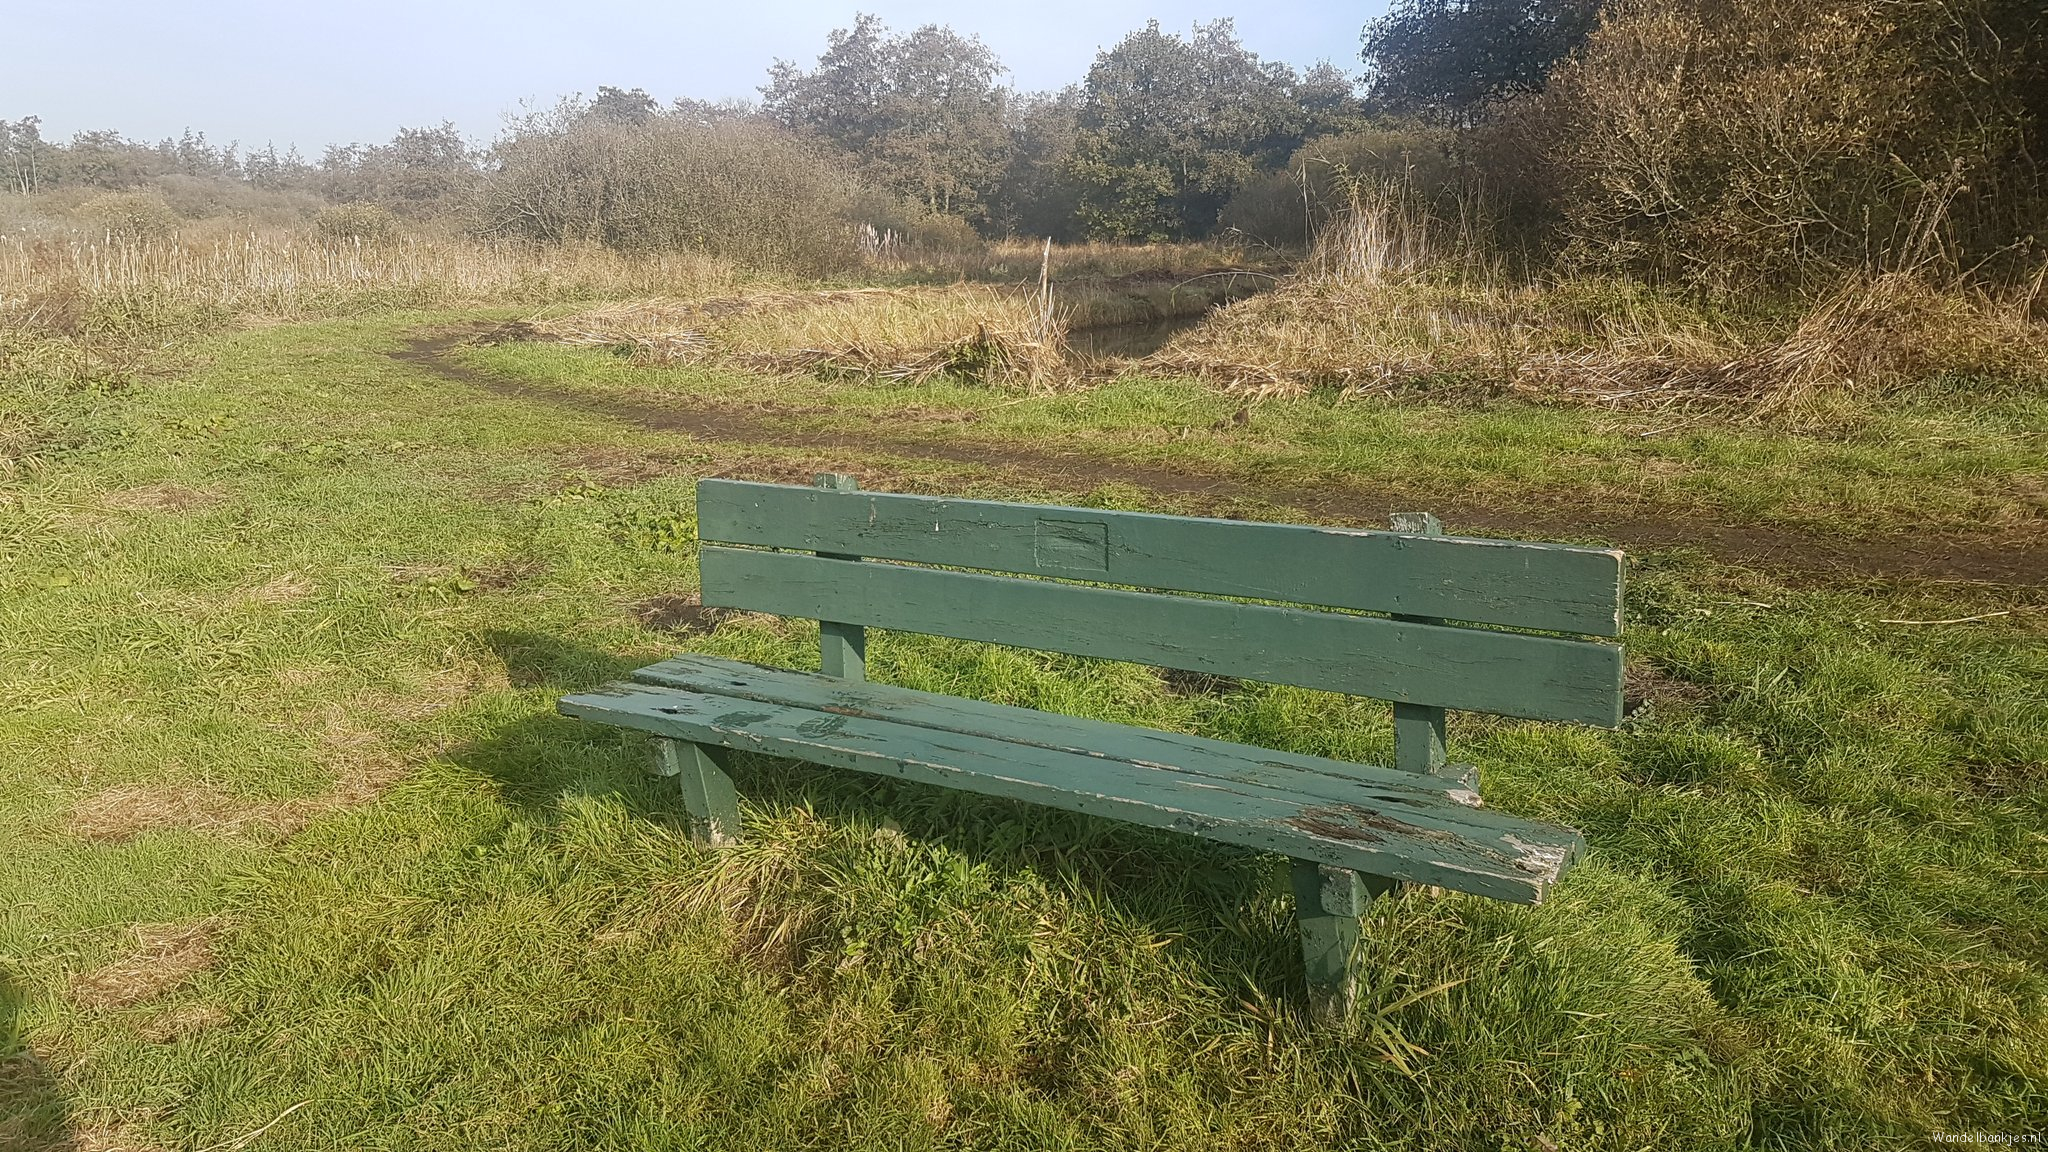 rt-methatammens-walking-benches-itfryskegea-lendevallei-wolvega-westell yard-bench-well-to-replace-to-https-t-co-onmkcbf1bd